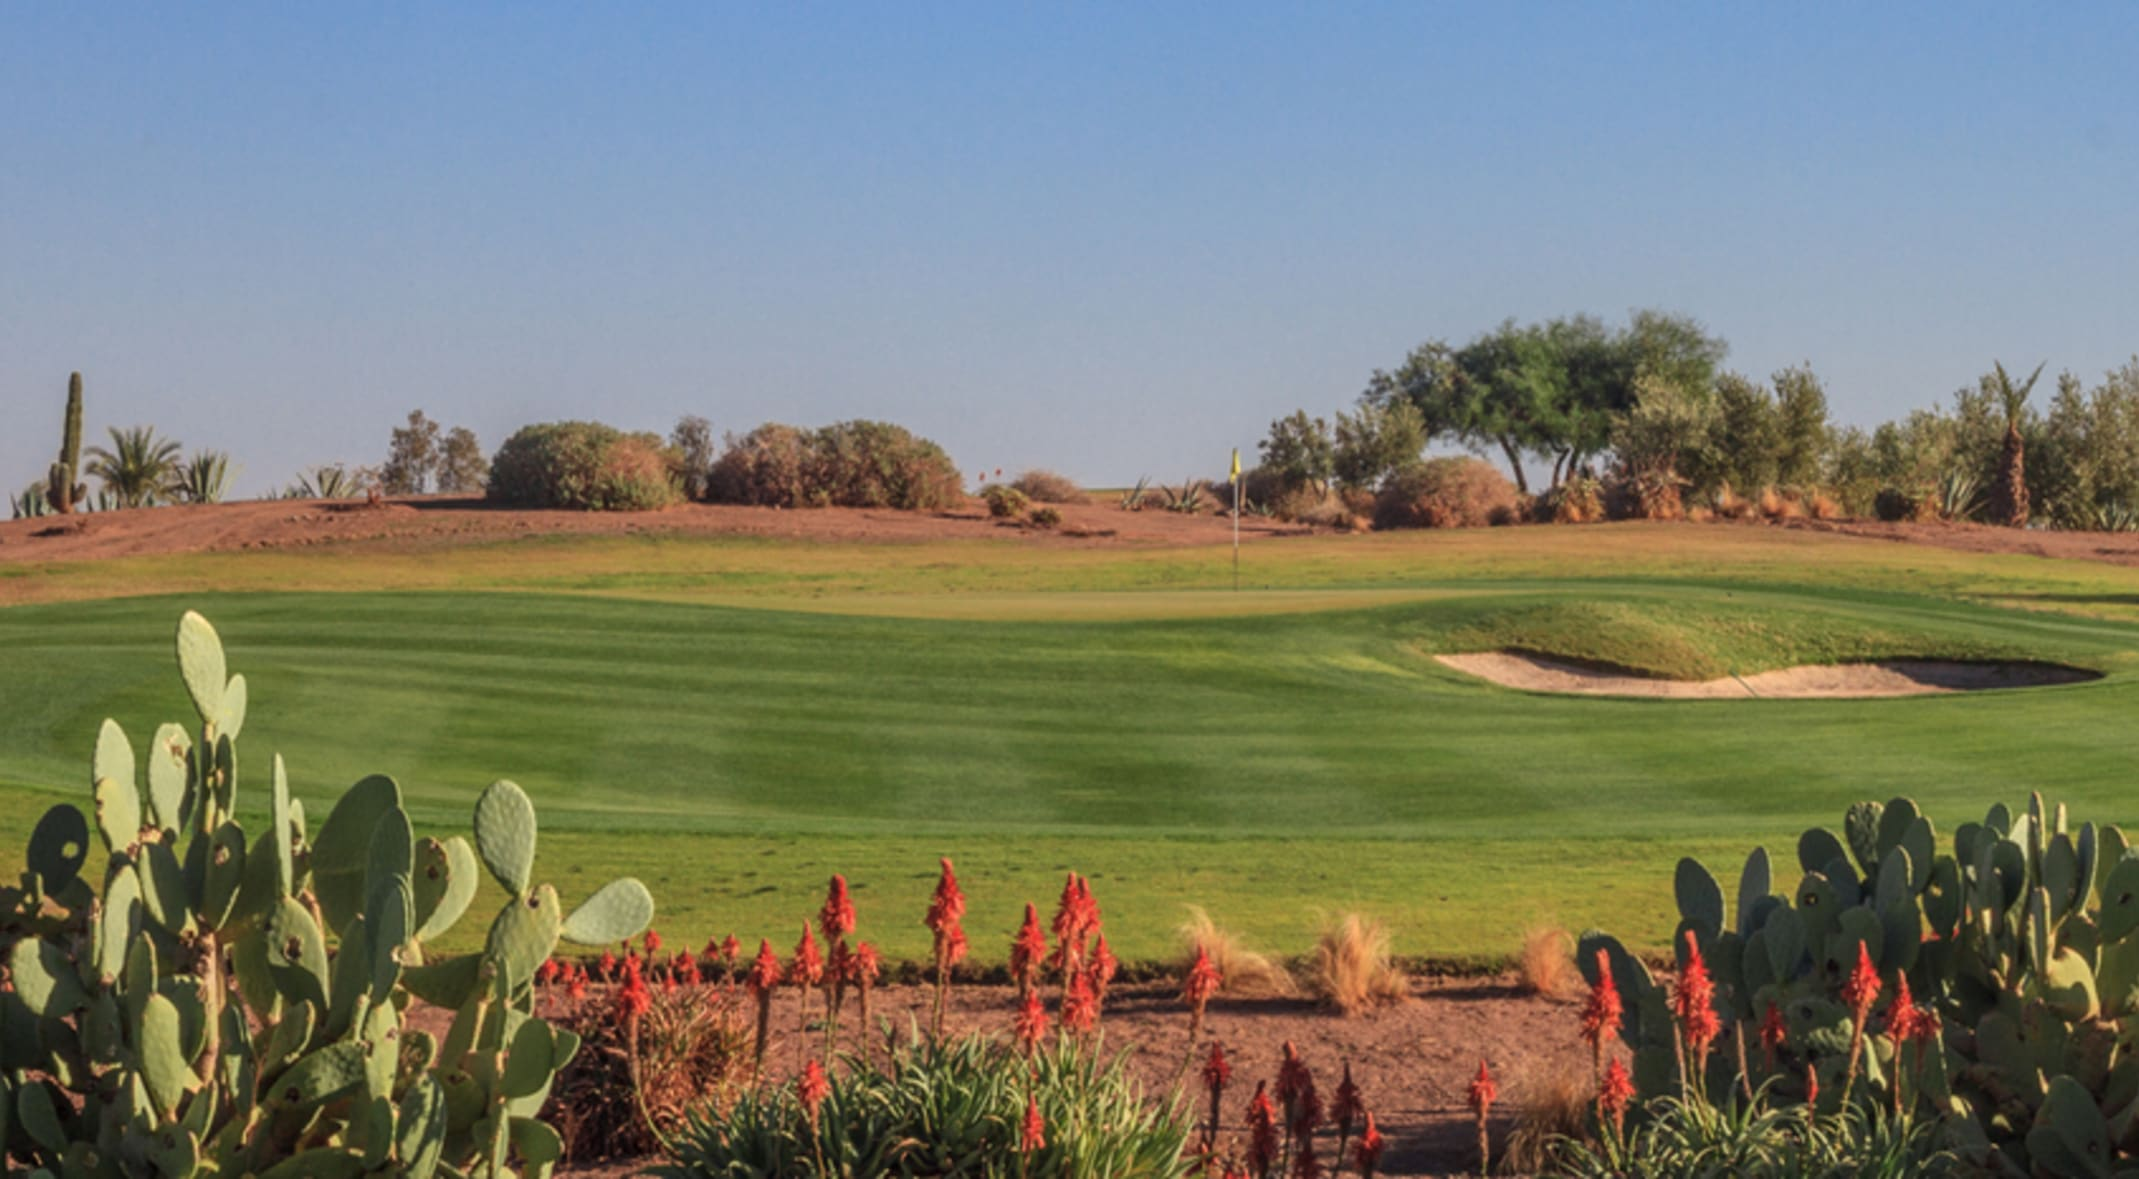 Pga Tour Championship 2020.New Event Heading To Morocco Starting In 2020